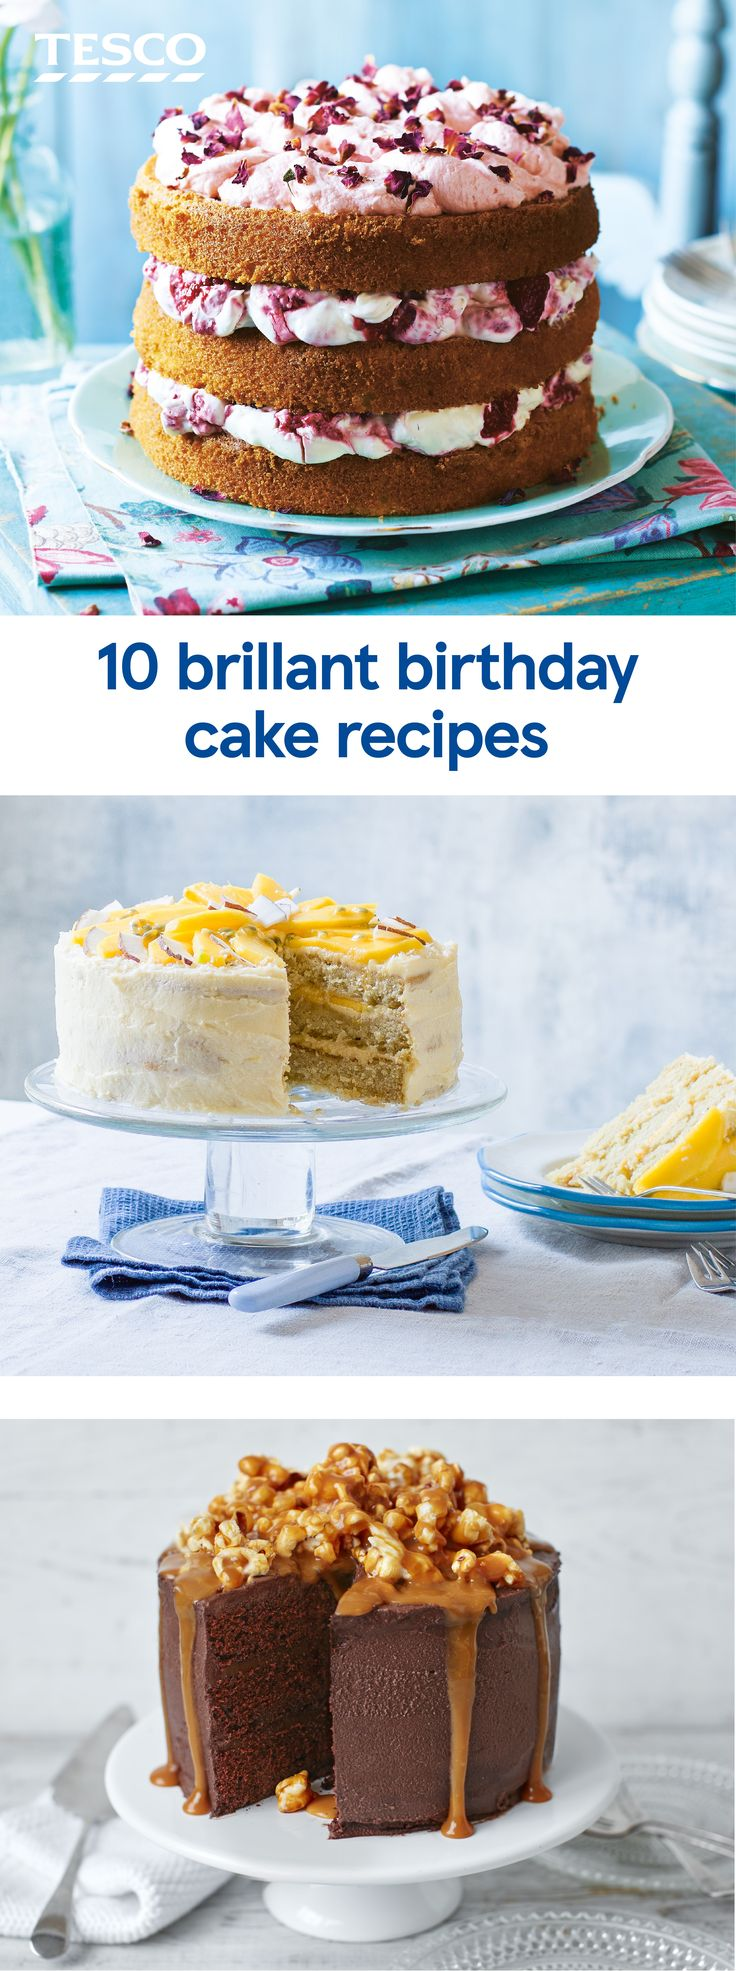 You can't have a birthday celebration without a cake, so why not whip up a homemade birthday cake that will make any party extra special. Choose from rich chocolate cakes to colourful layer cakes, and even a fruity vegan birthday cake, too. | Tesco